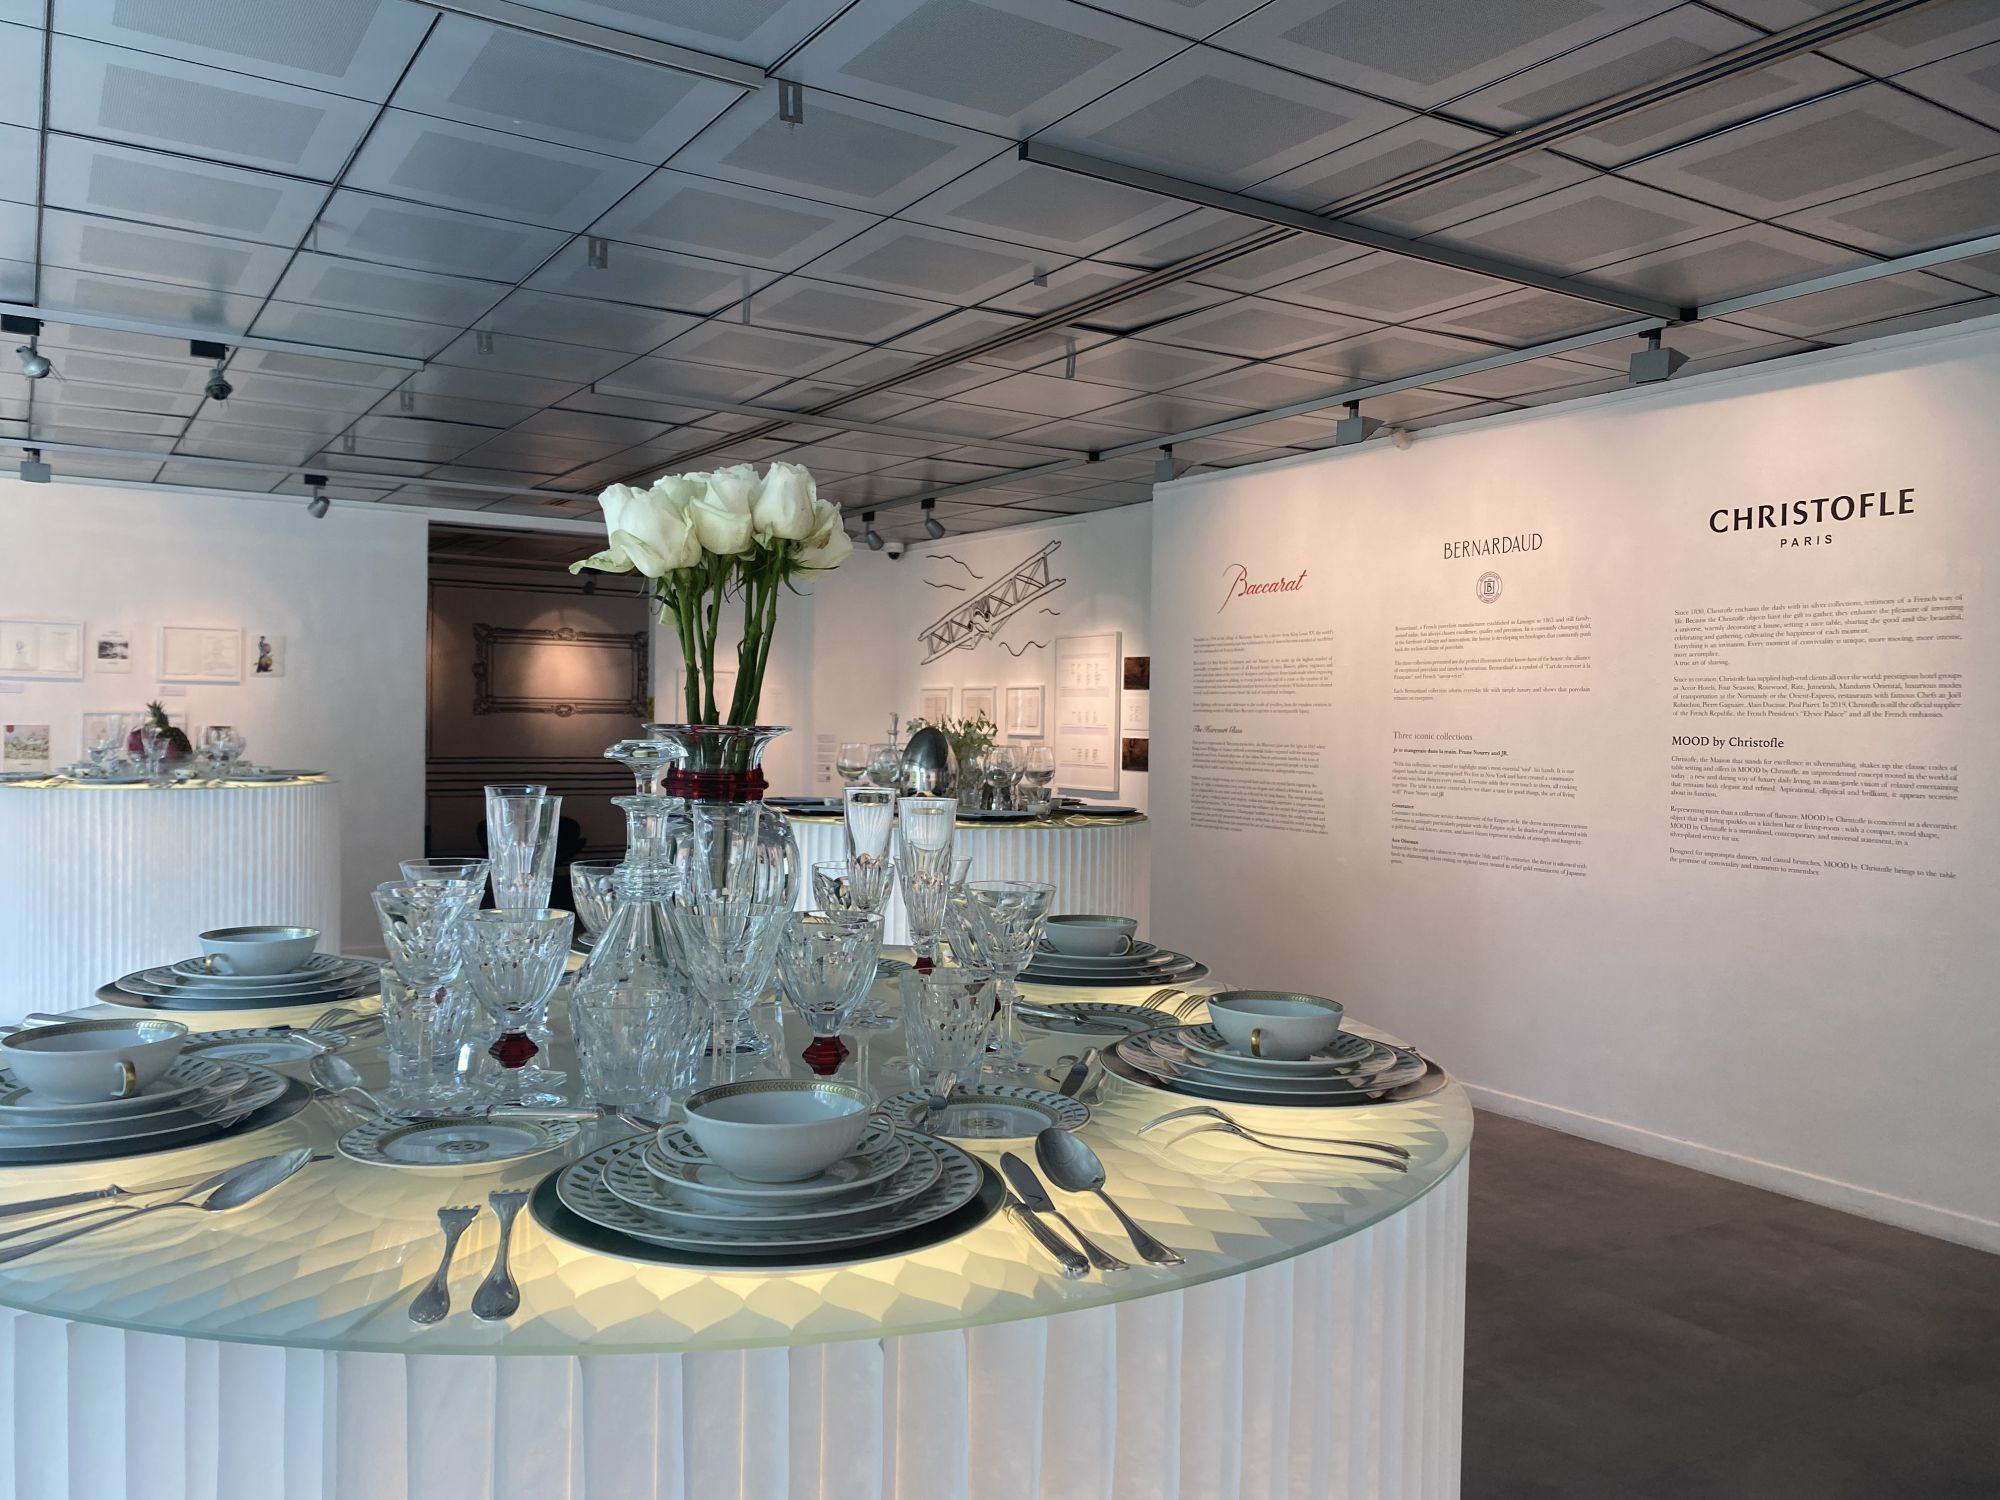 6 Things to Know About the French Art of Fine Dining at Alliance Française's New Exhibition